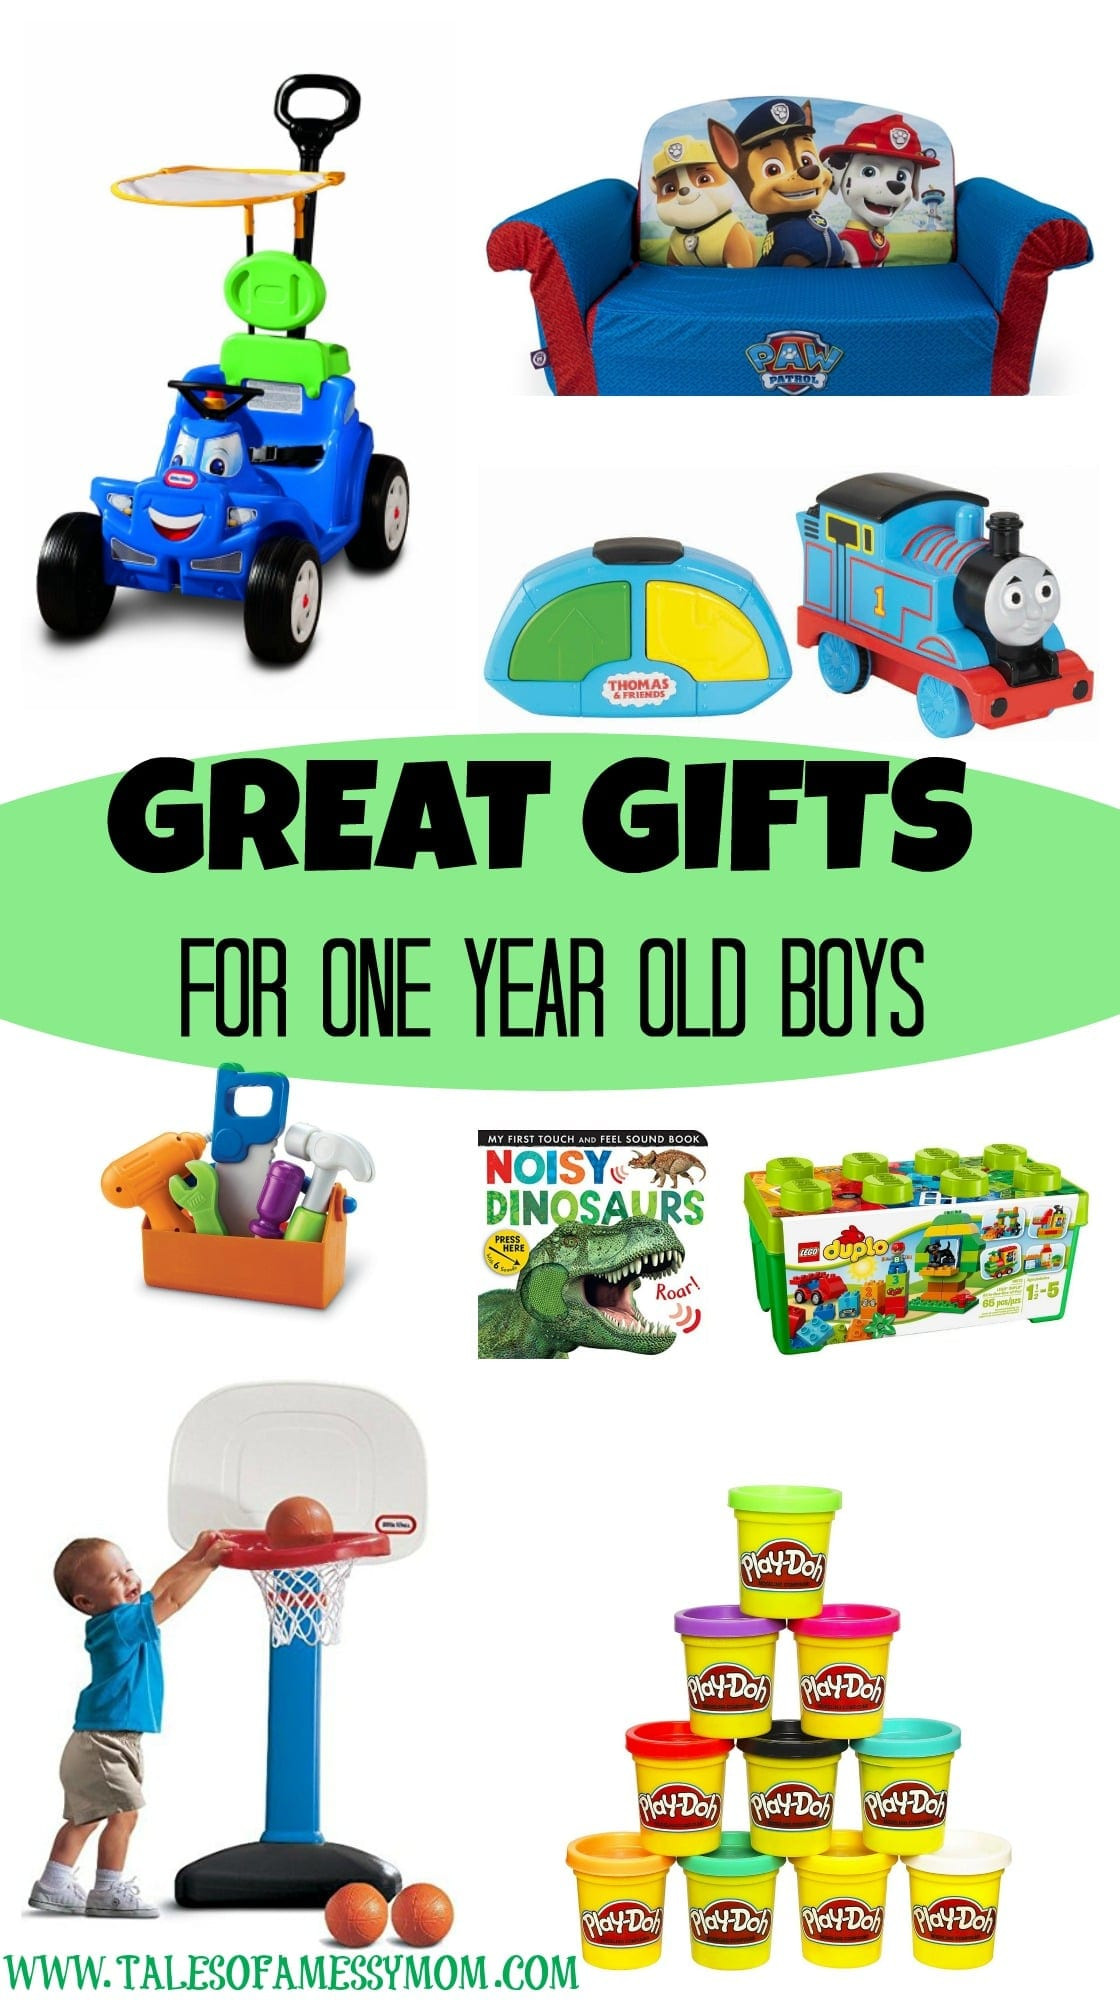 Gift Ideas For 1 Year Old Boys  Gift Ideas for e Year Old Boys Tales of a Messy Mom